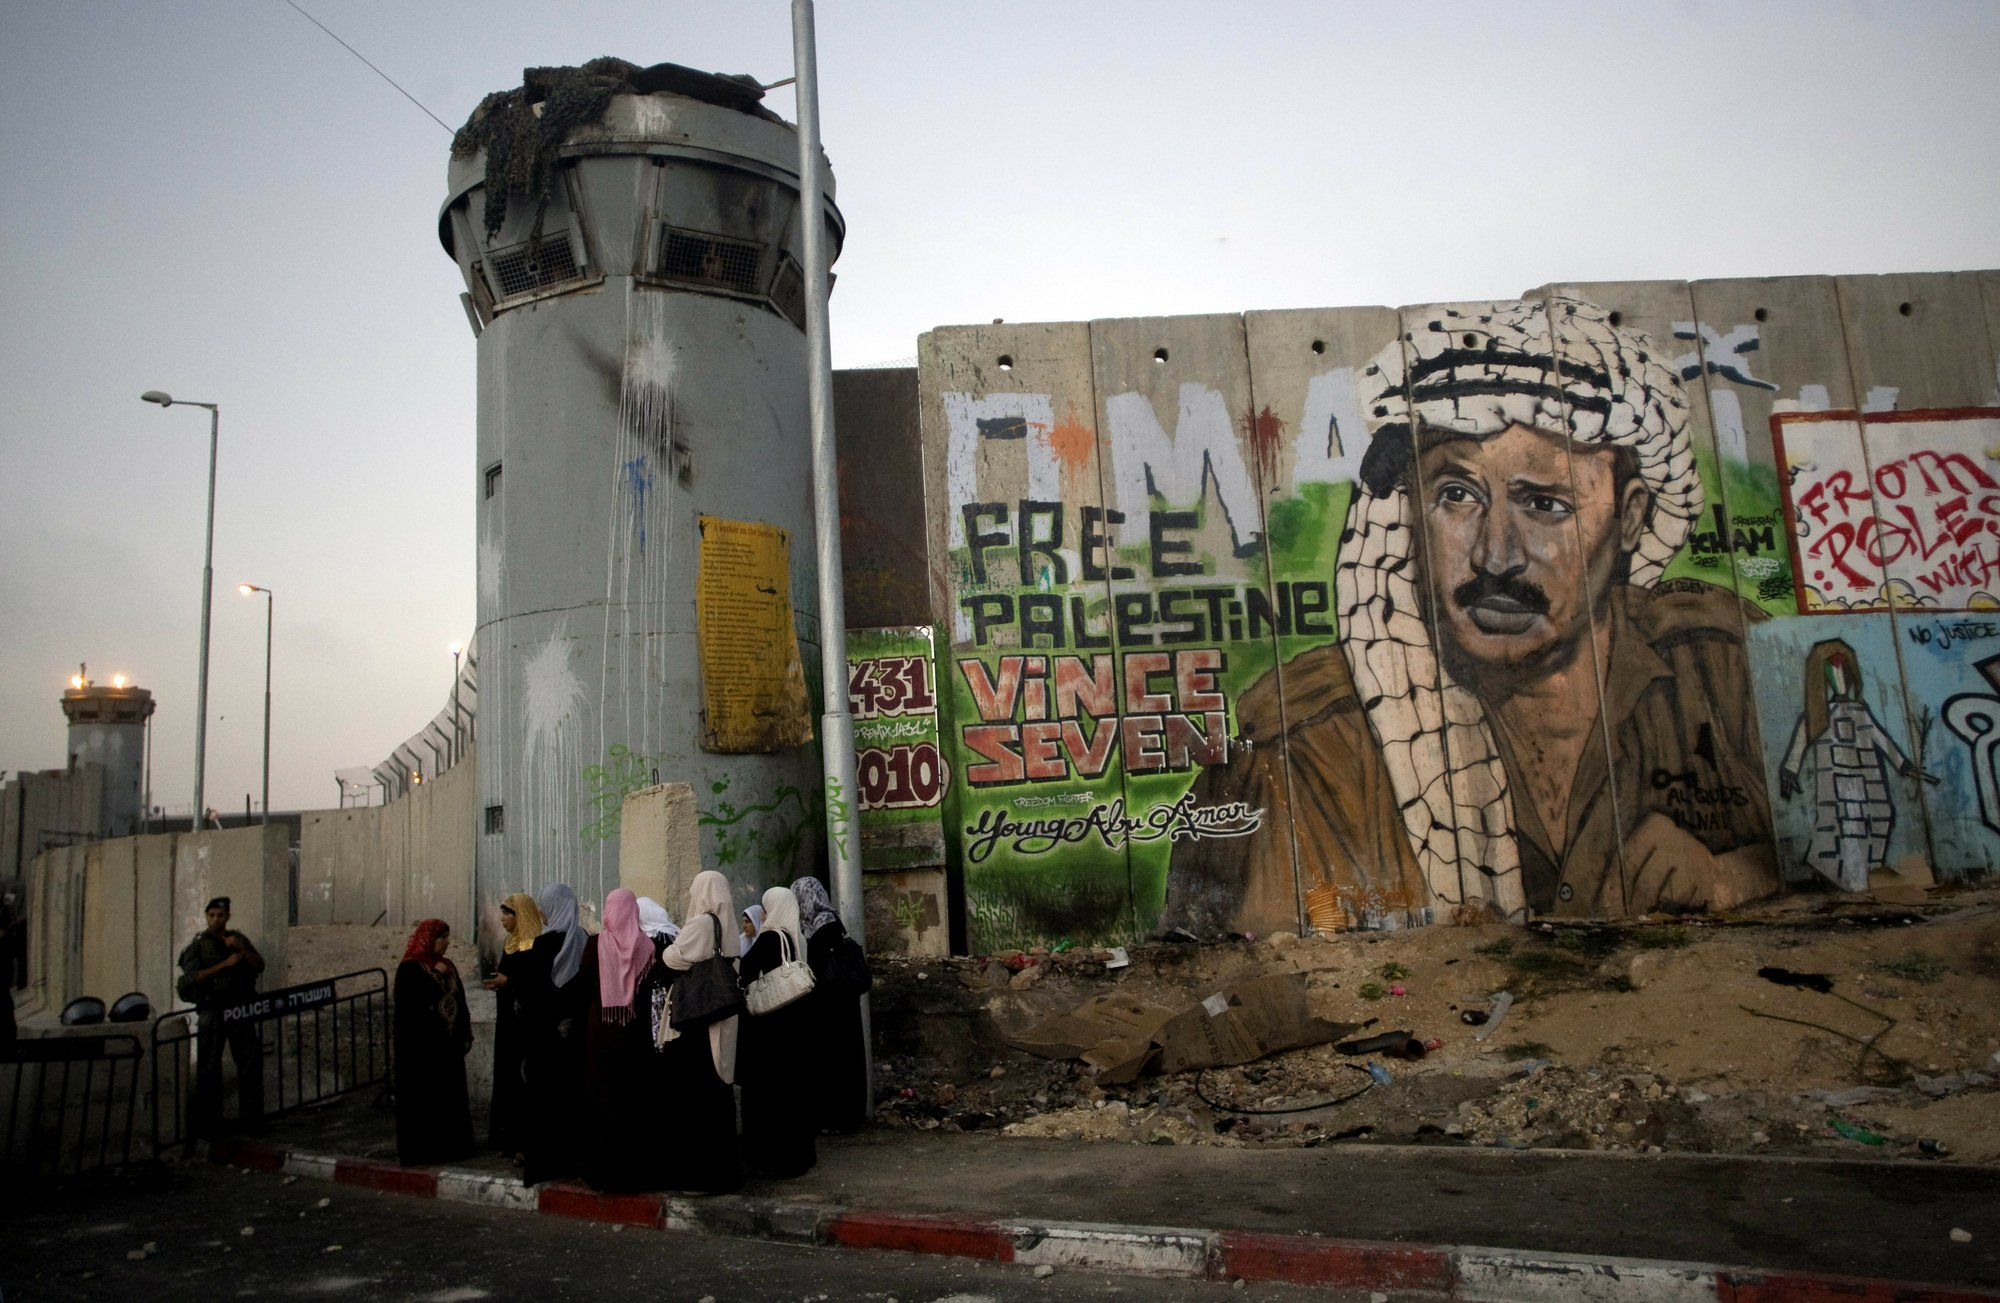 Israeli election may have dimmed hopes for 2-state solution